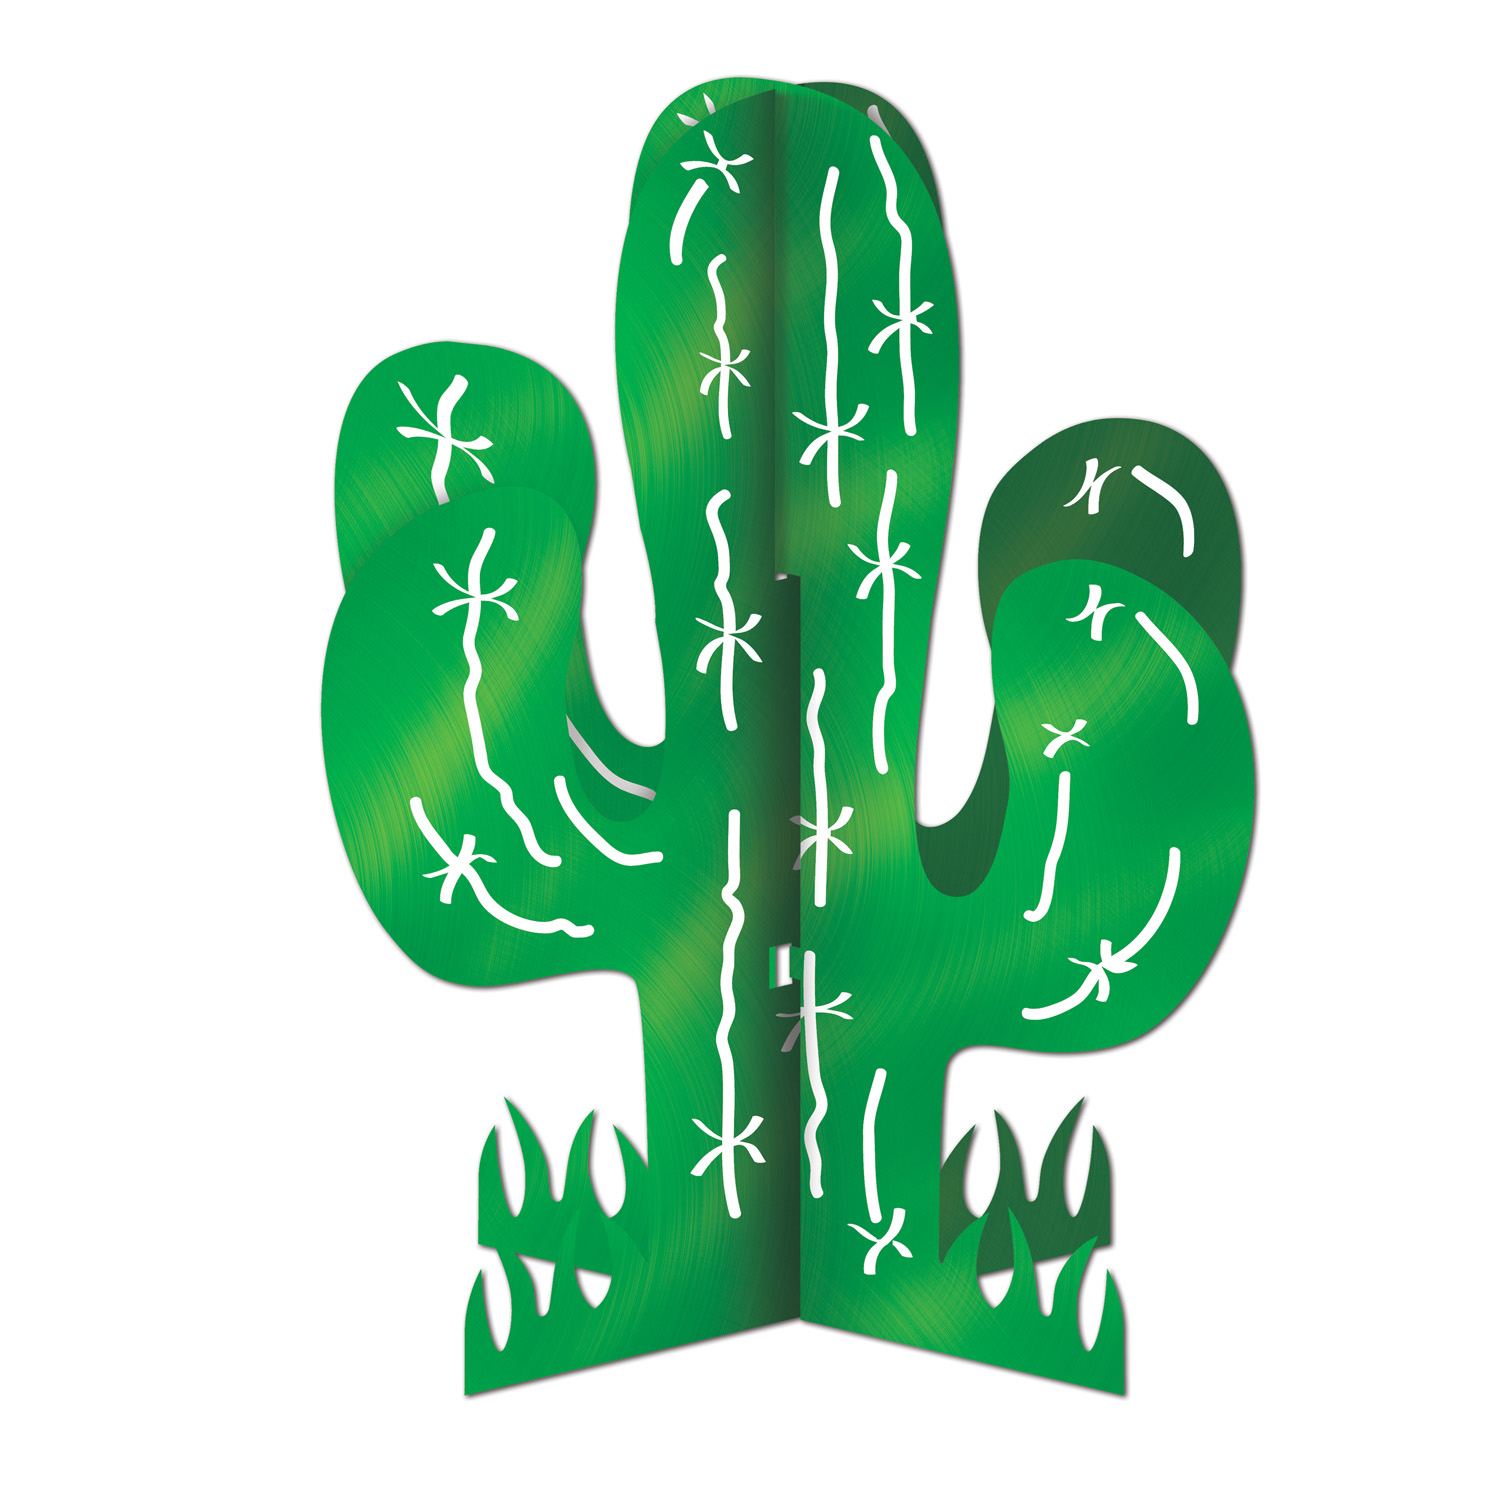 3-D Cactus Centerpiece (Pack of 12) 3-D Cactus Centerpiece, centerpiece, cactus, decoration, wholesale, inexpensive, bulk